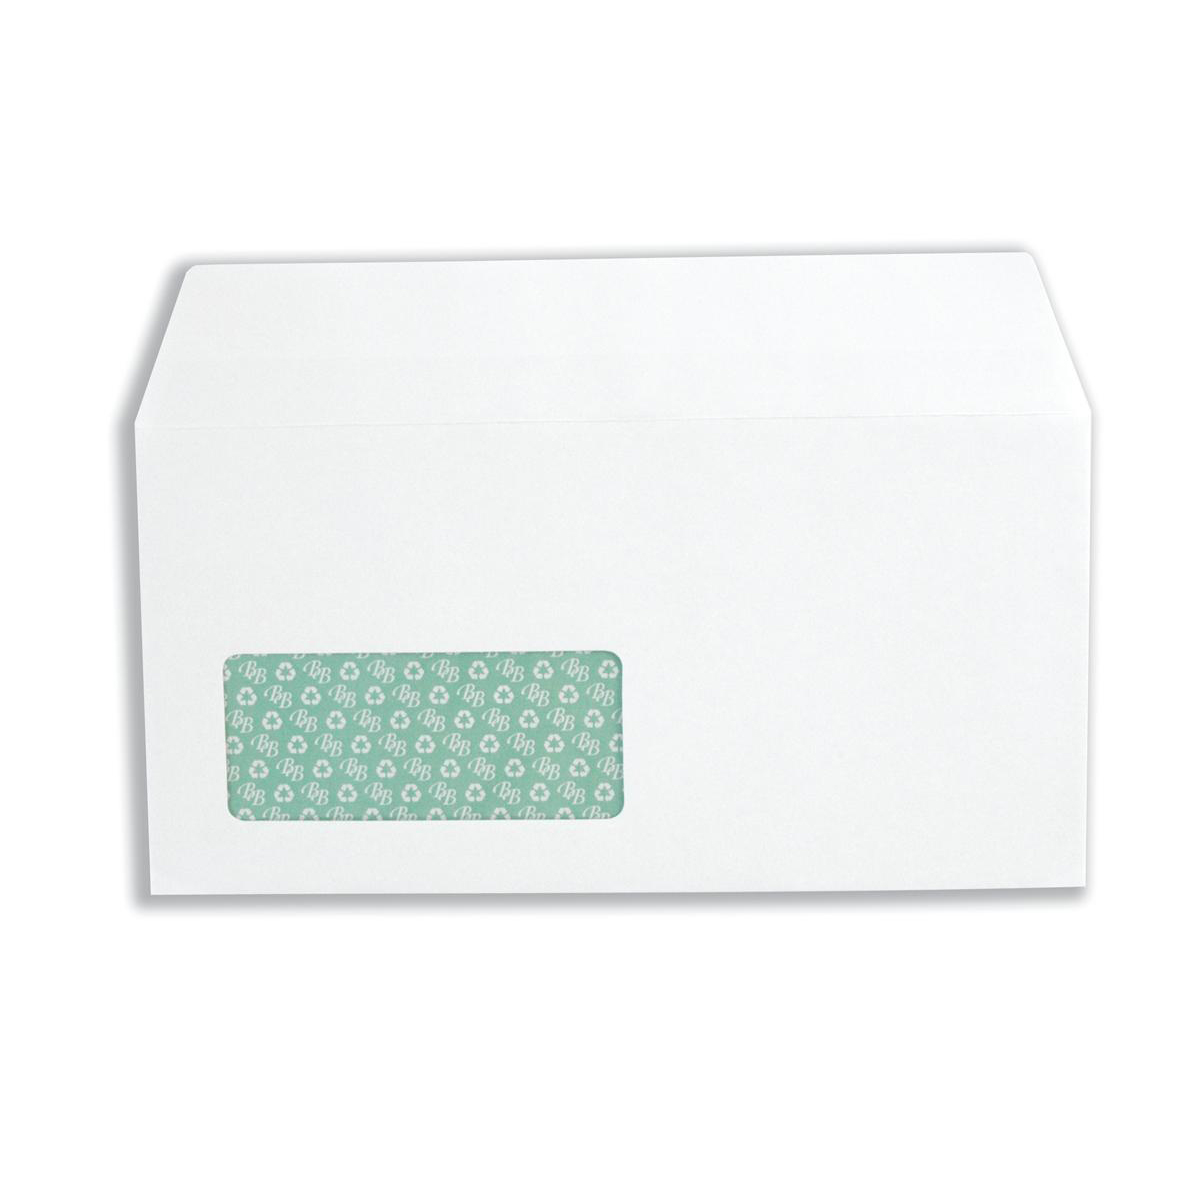 Basildon Bond Envelopes FSC Recycld Wallet P&S Window 120gsm DL 220x110mm White Ref D80276 Pack 100